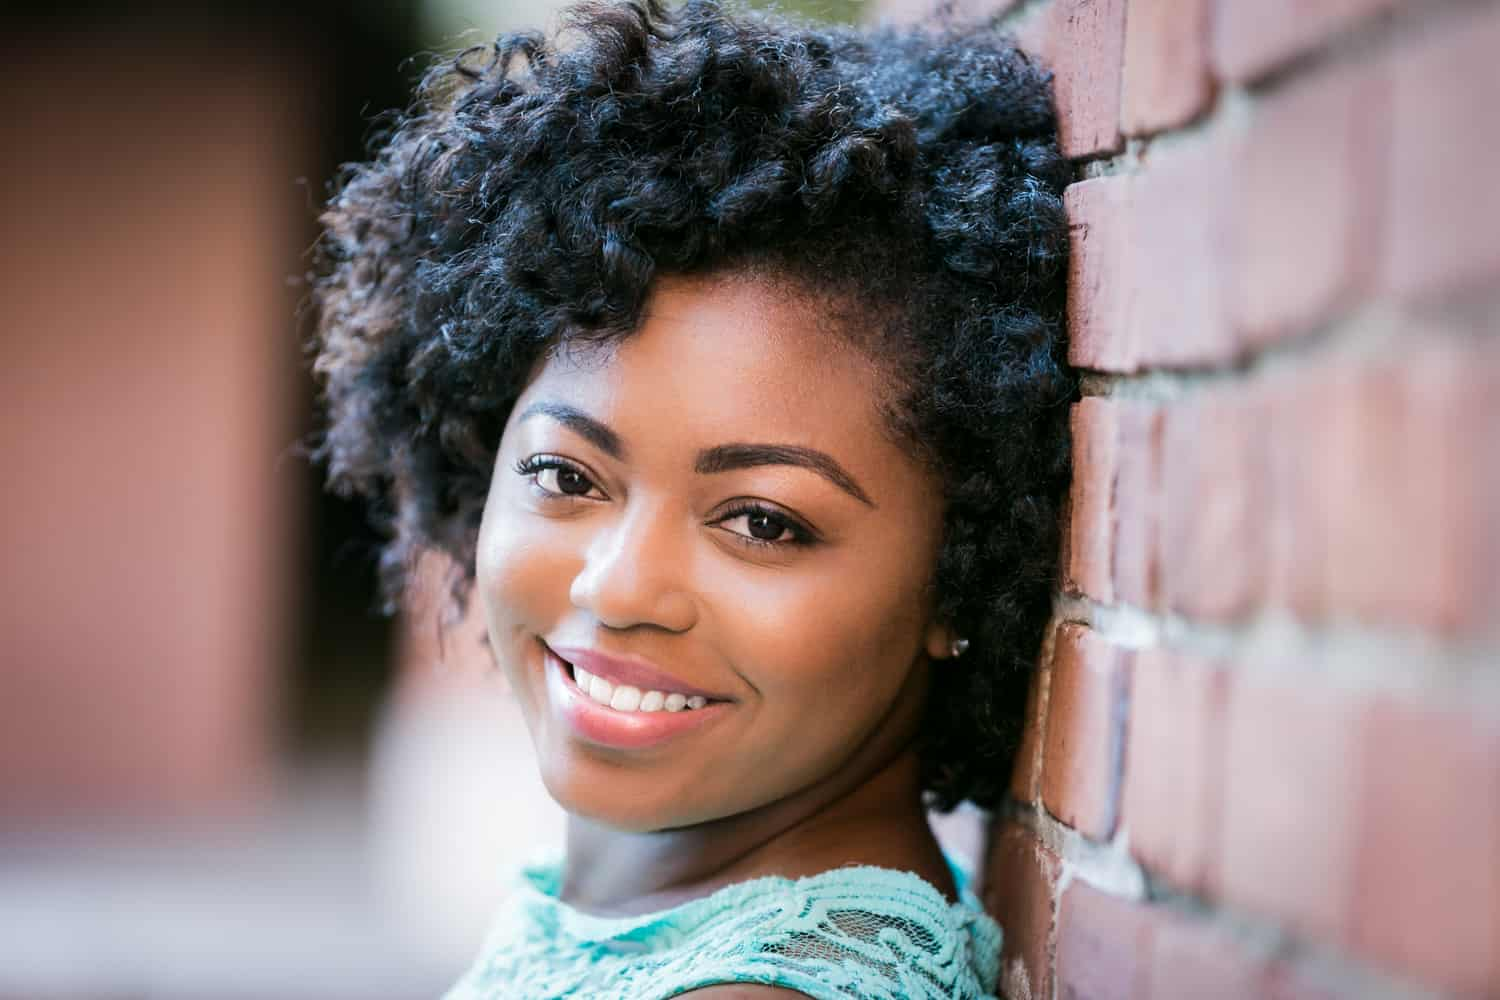 Headshot of African American model against brick wall